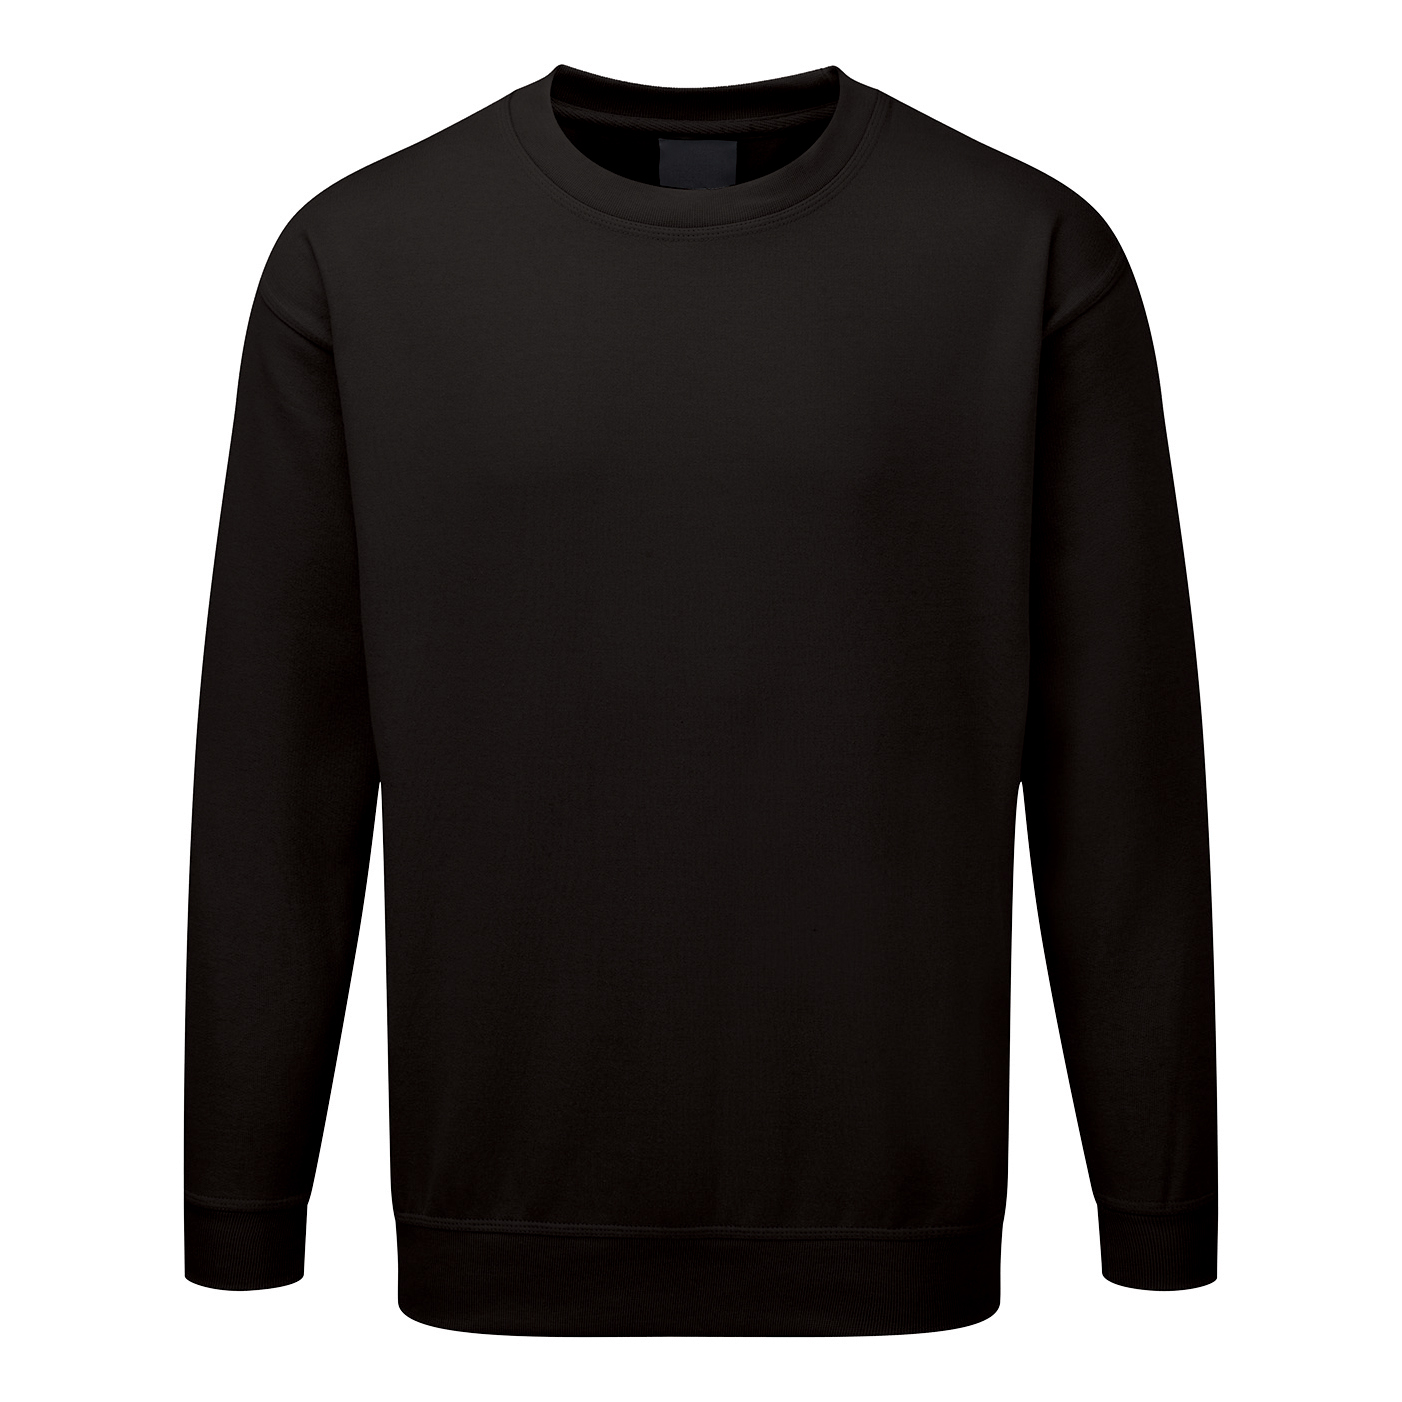 Click Workwear Sweatshirt Polycotton 300gsm Small Black Ref CLPCSBLS 1-3 Days Lead Time